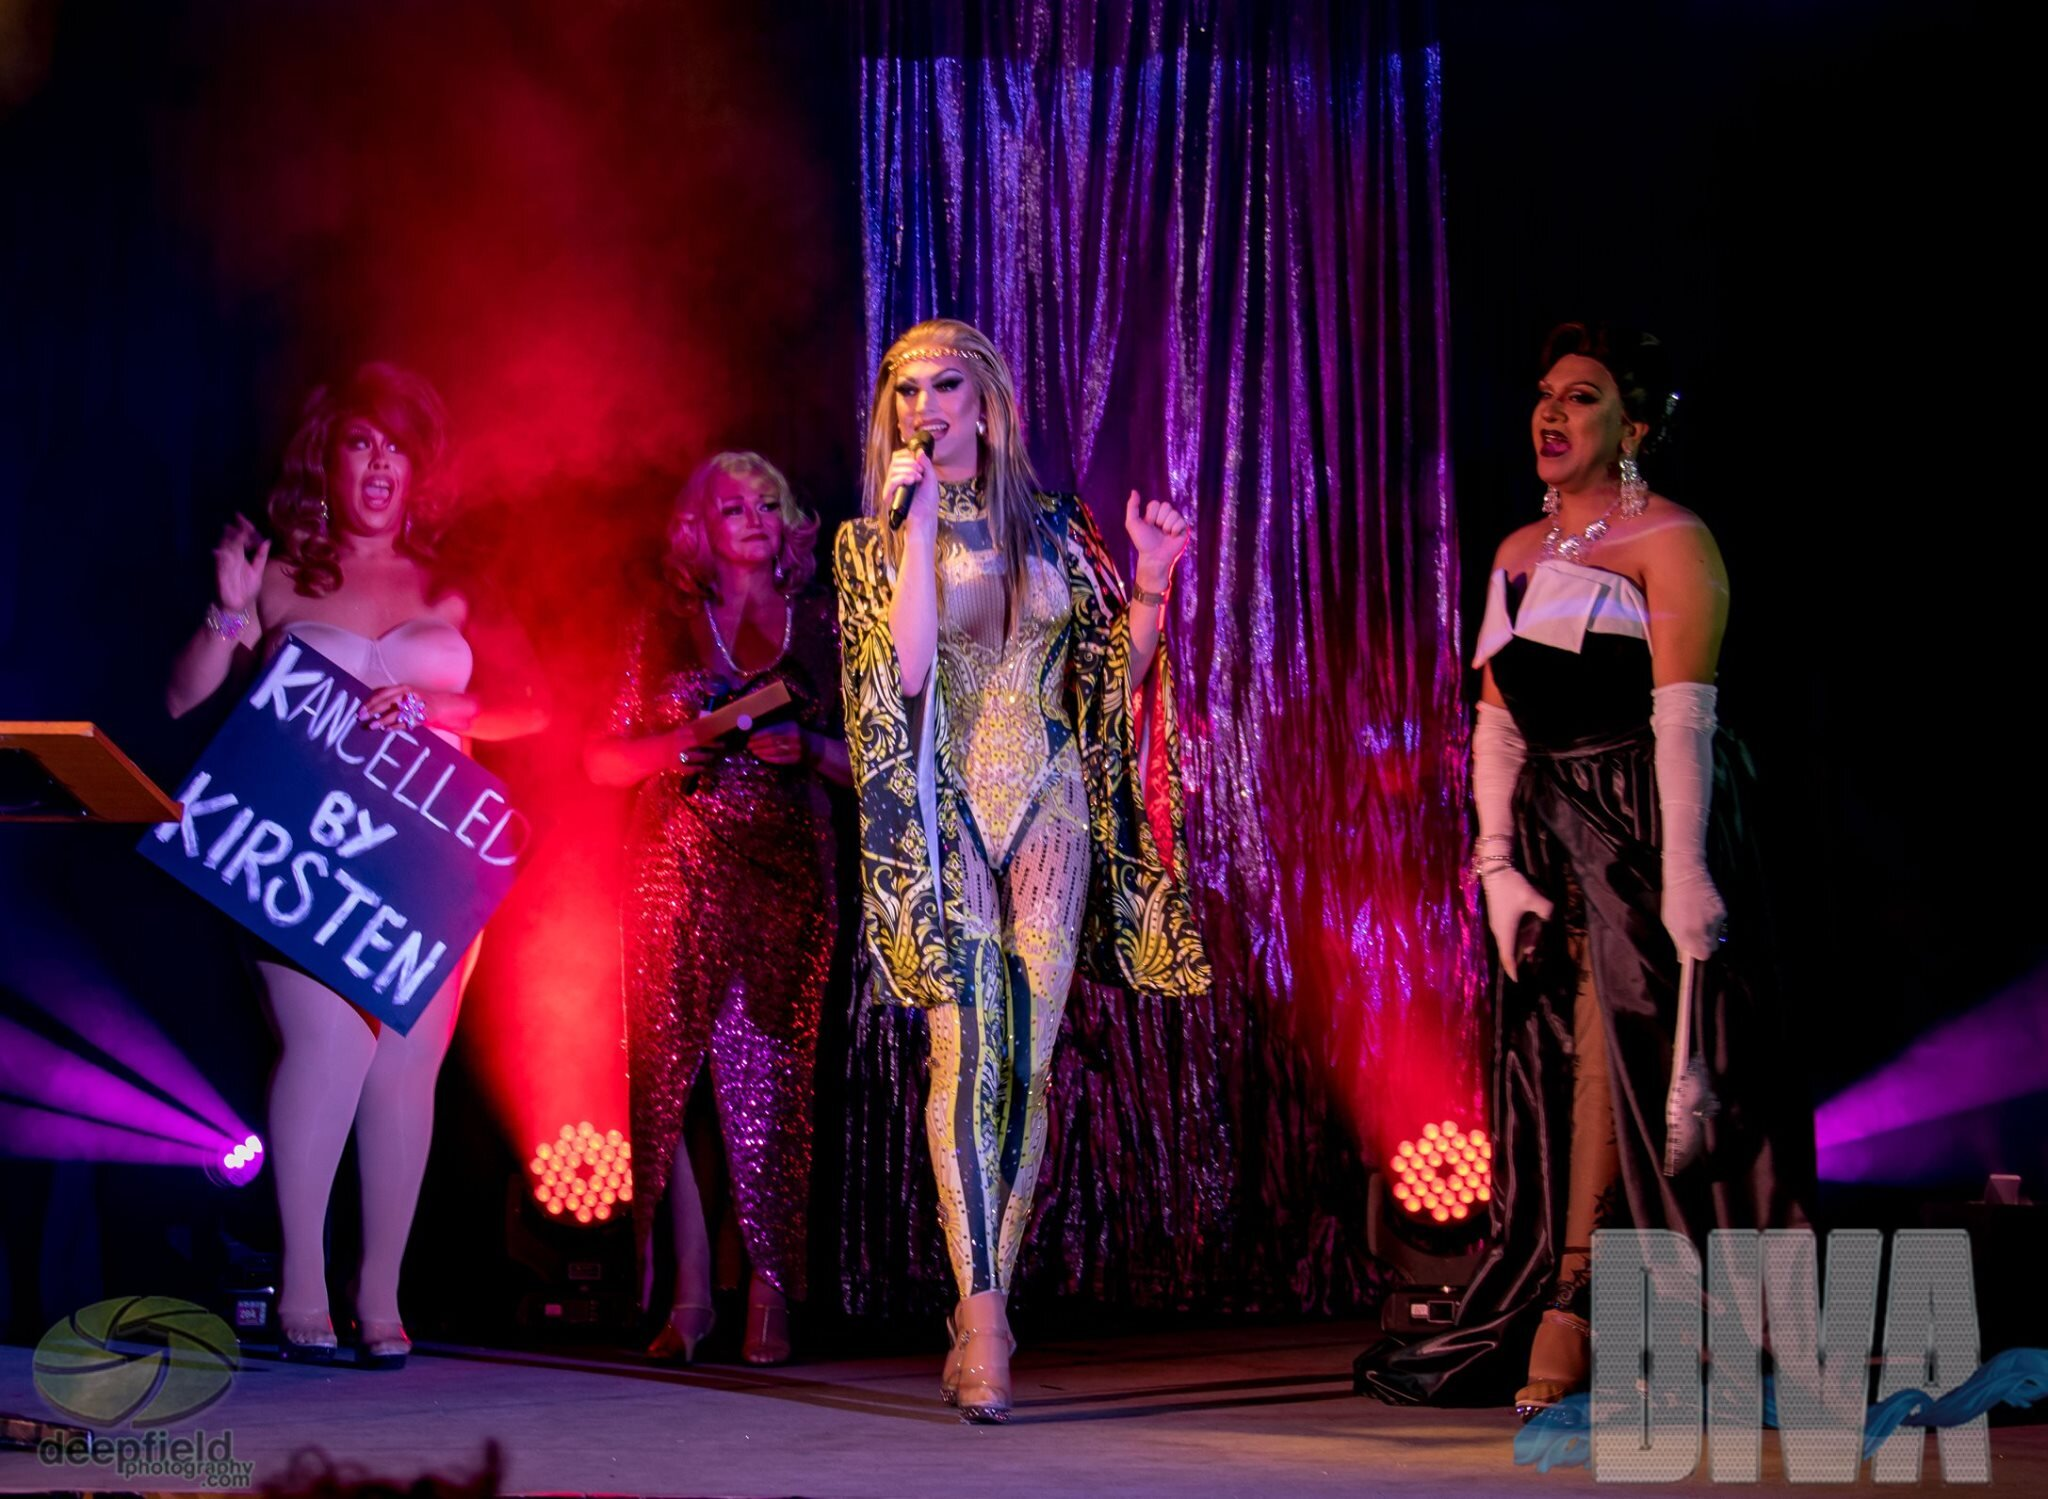 masqueerade-arq-sydney-show-of-the-year-favourite-charisma-belle-sia-tequila-coco-jumbo-diva-awards-sydney-drag-queen-royalty-best-hire-drag-race-australia-3.jpg